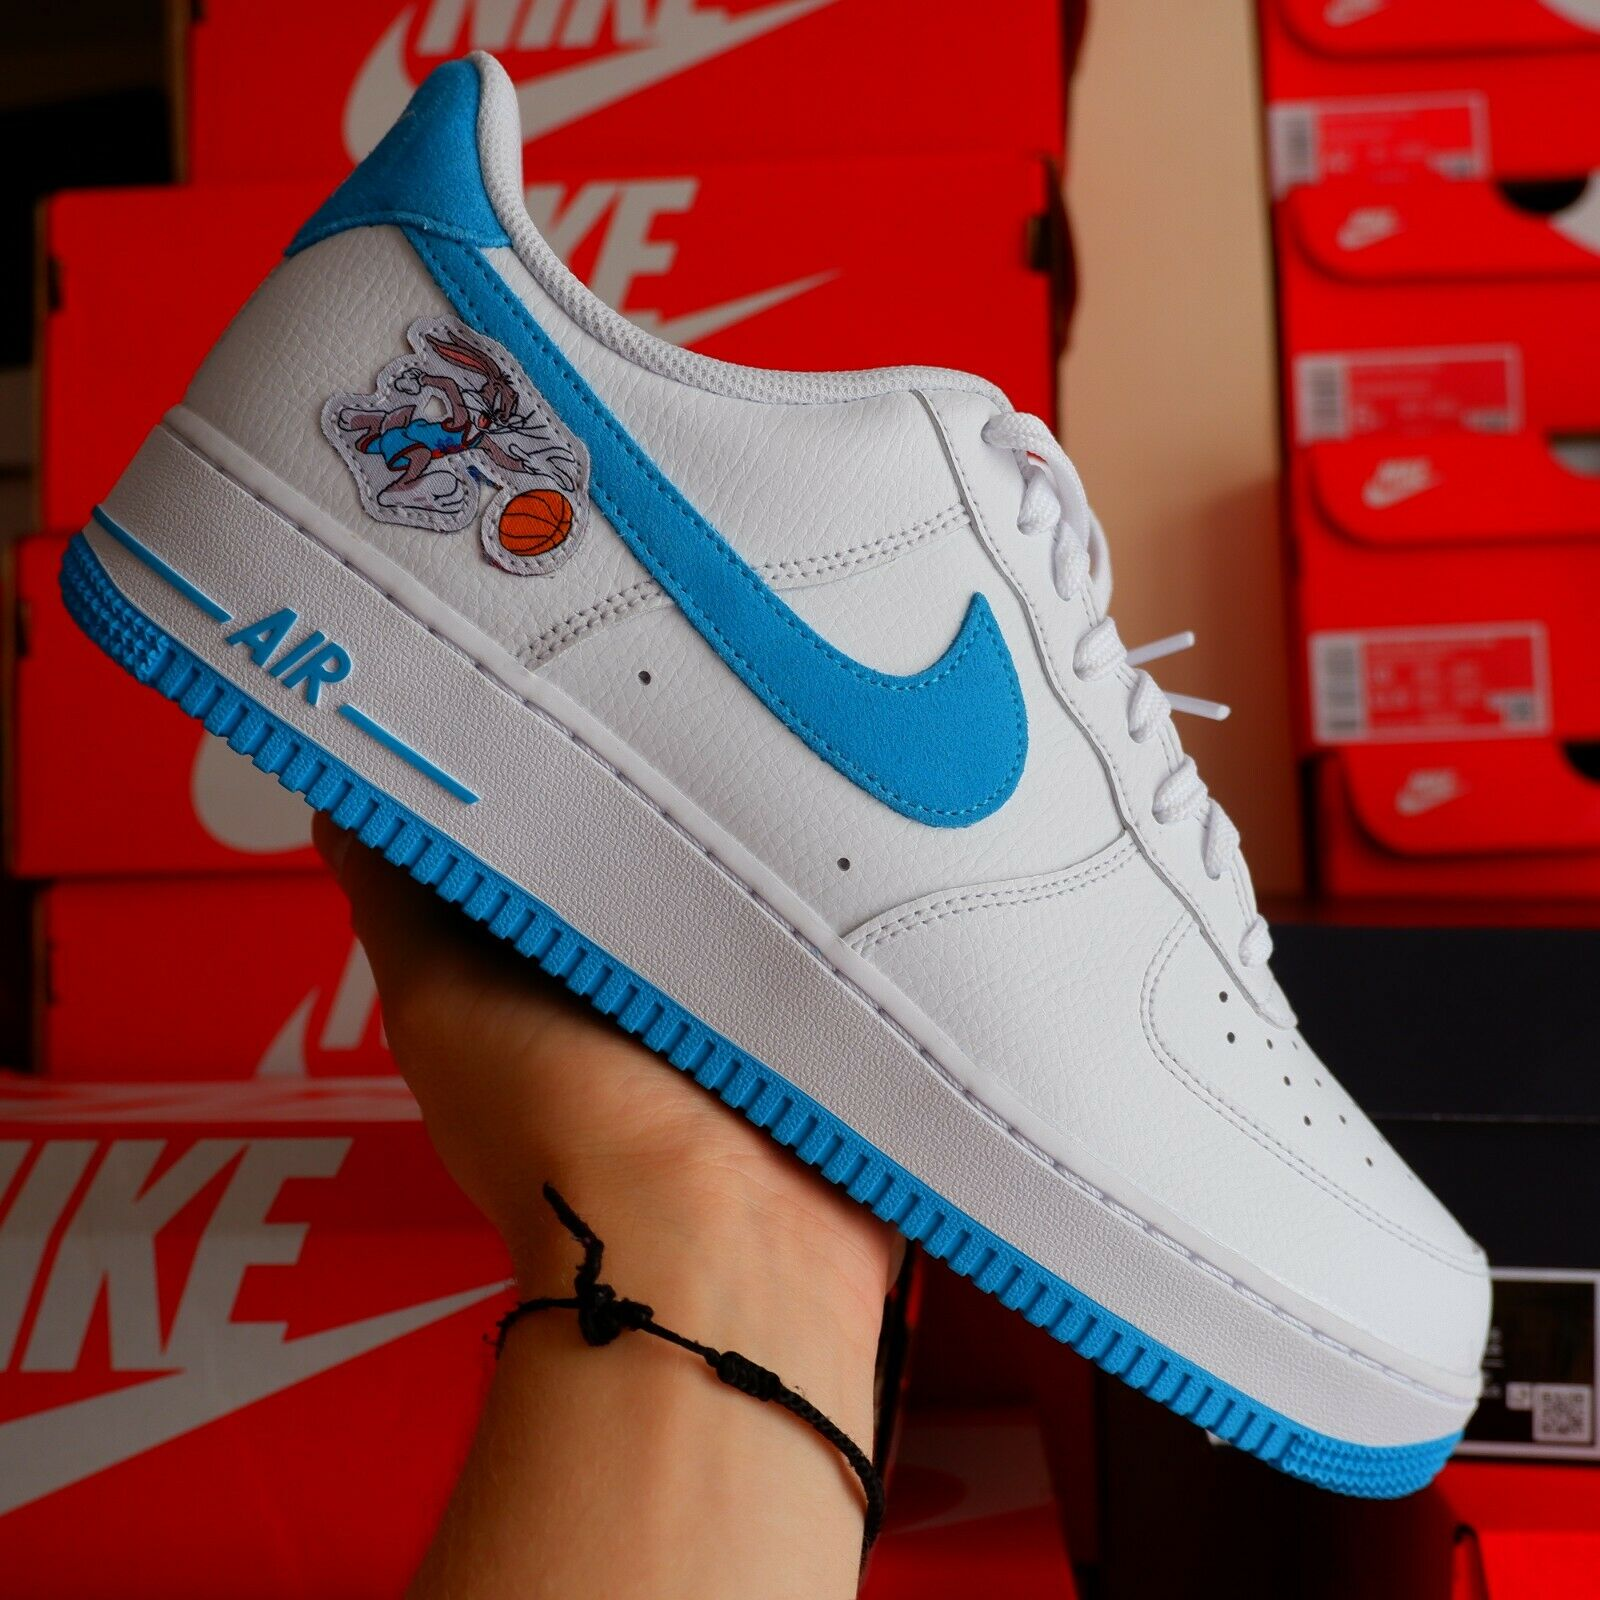 NIKE AIR FORCE 1 SPACE JAM 2 HARE UK8.5 US9.5 ✅✅ IN HAND BRAND NEW✅✅✅✅ 2✅7